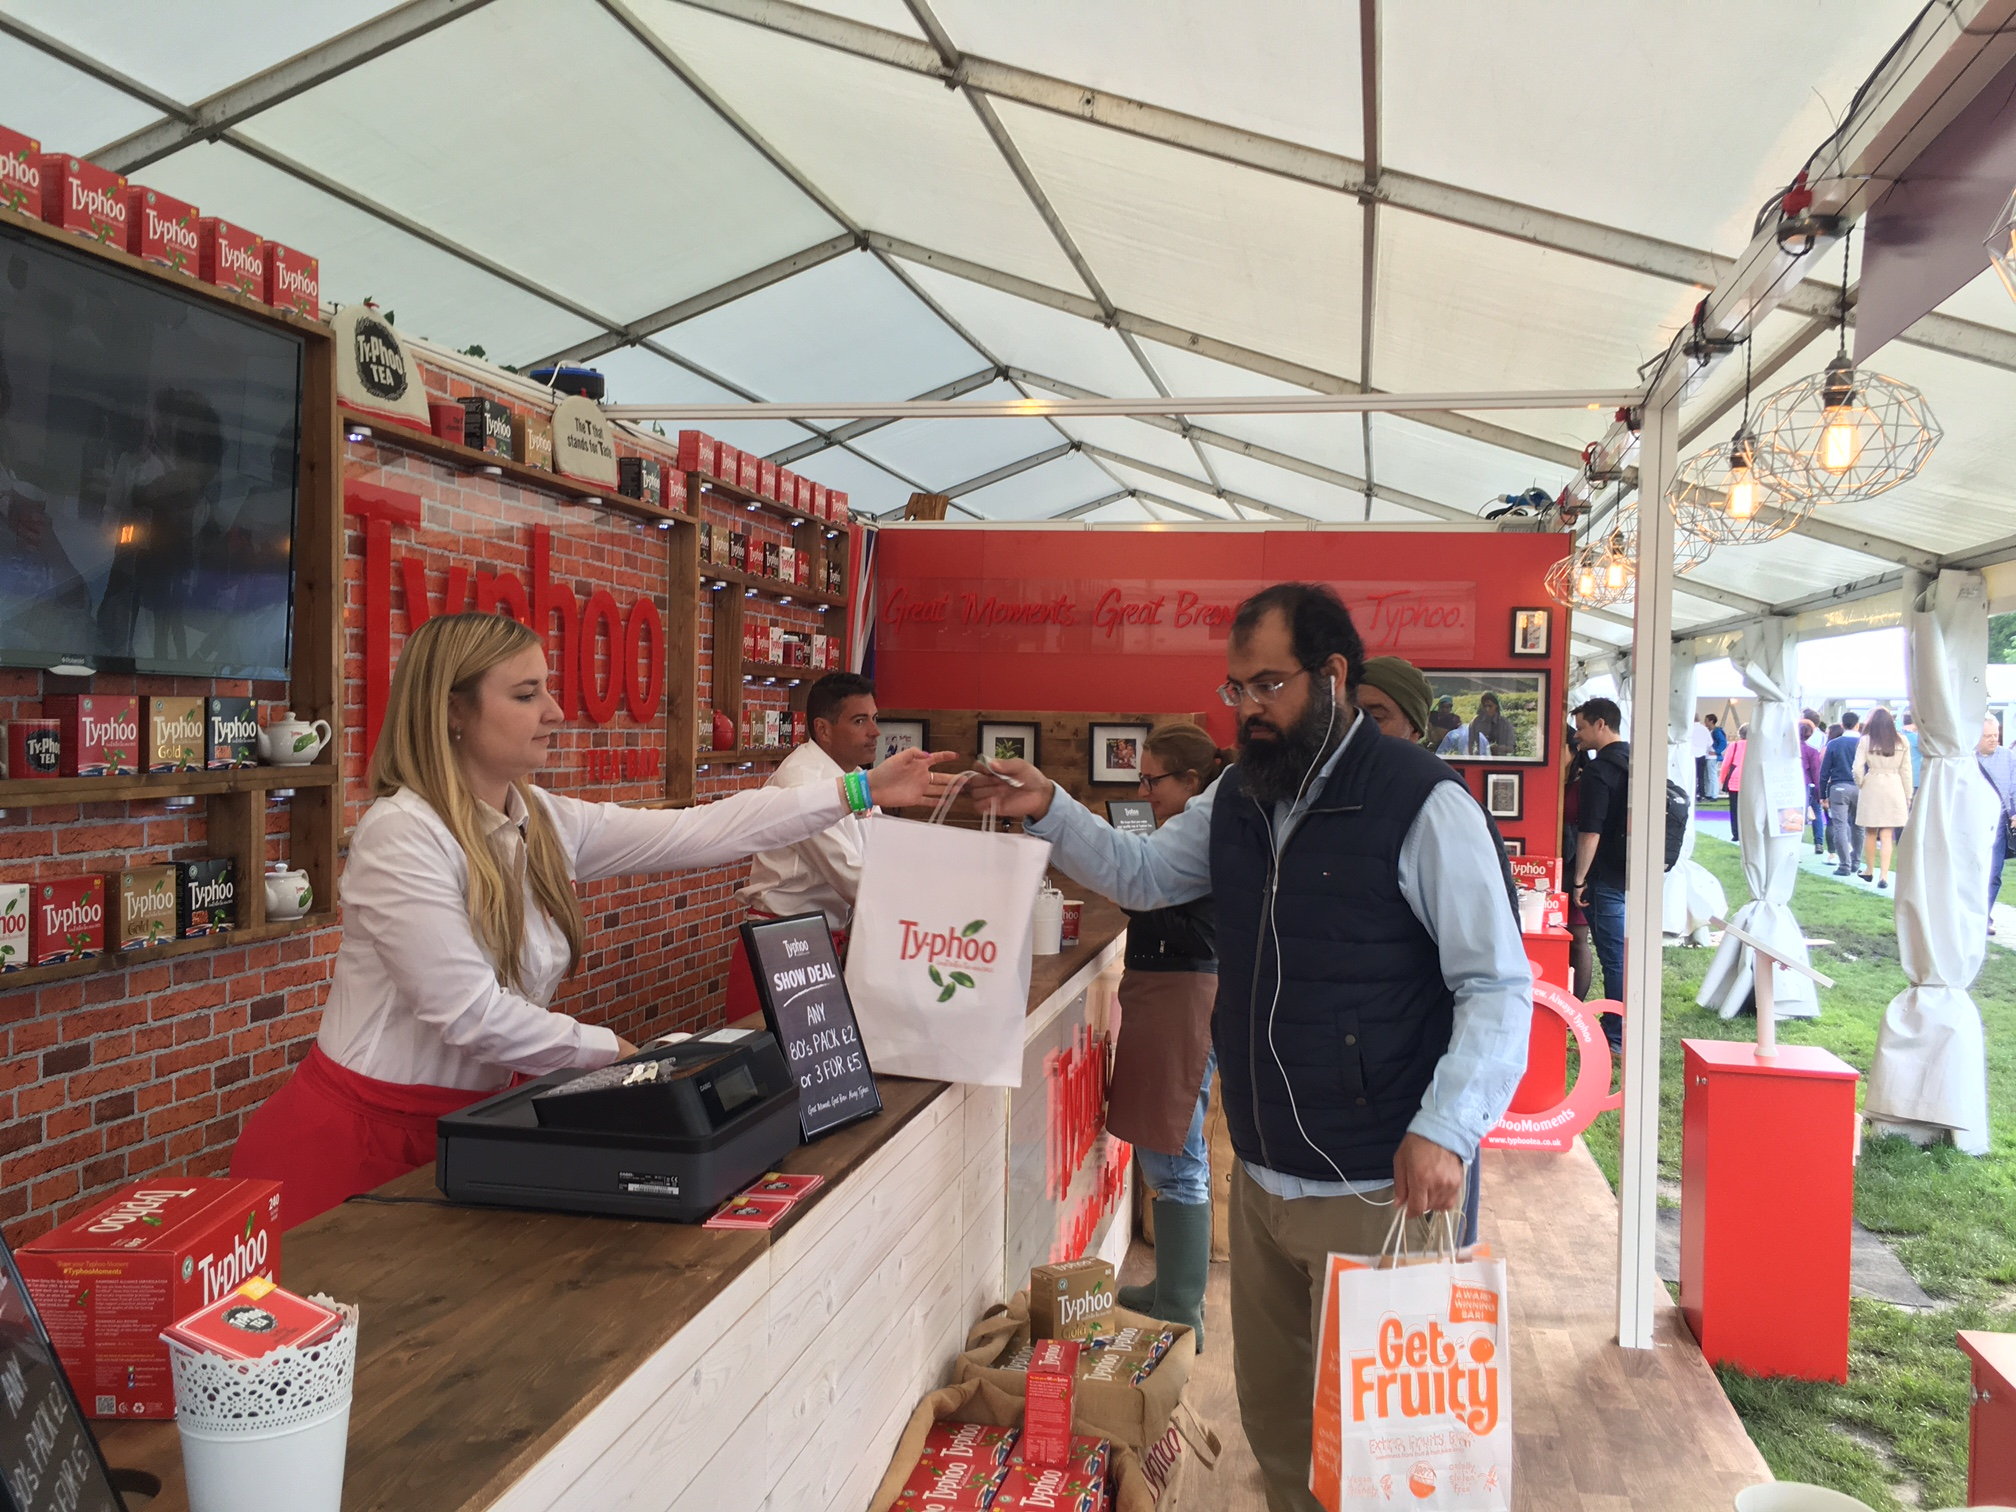 Consumer event sampling with Typhoo Tea